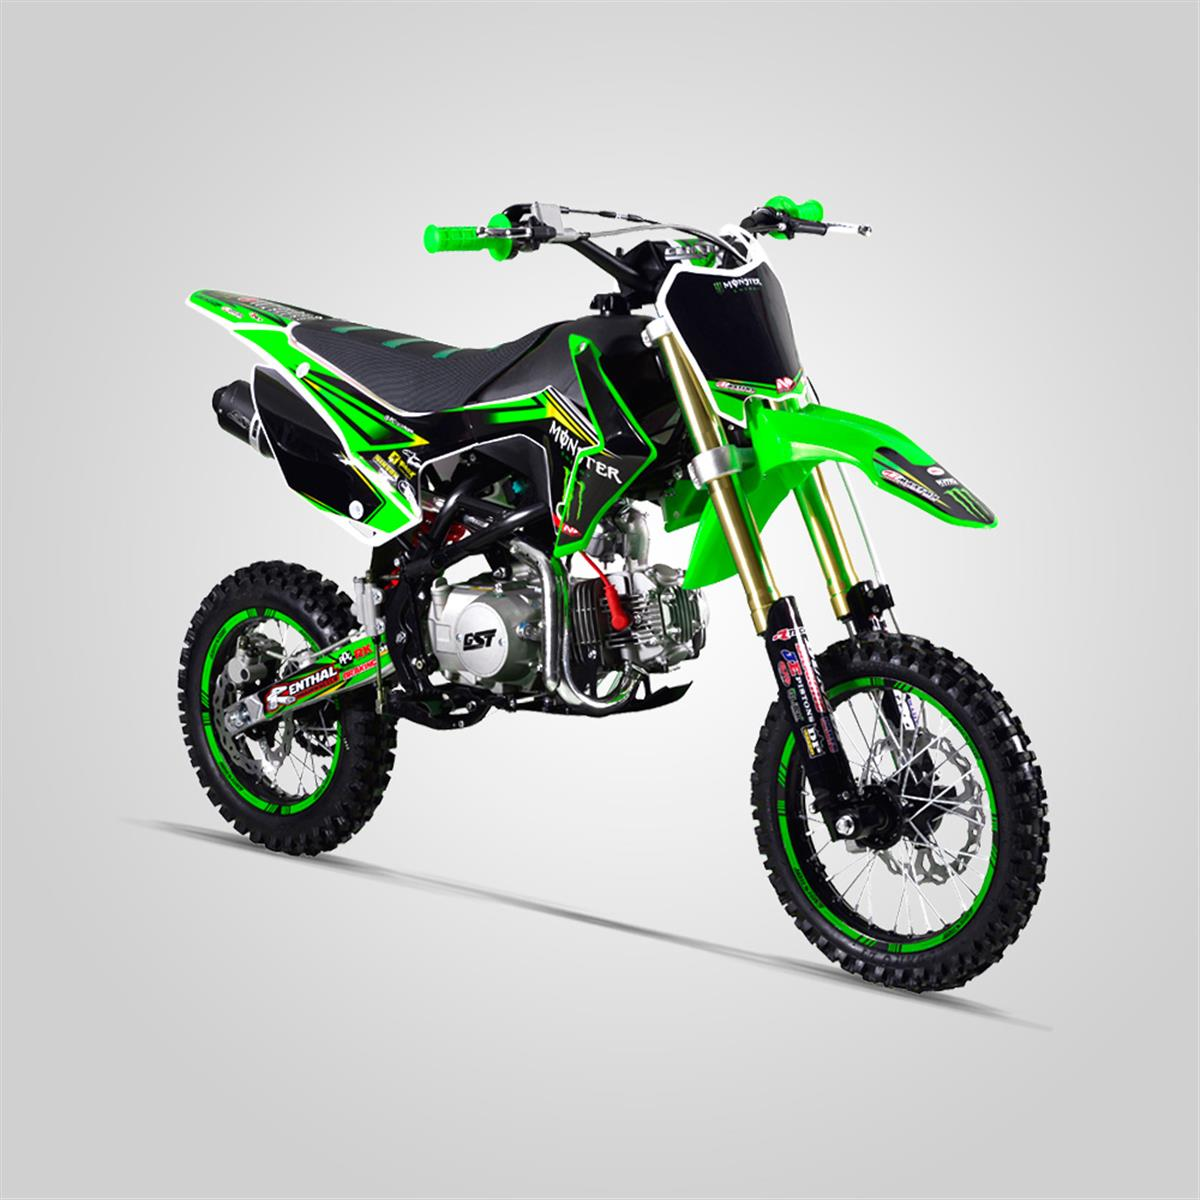 dirt bike 125cc gunshot 12 14 smallmx dirt bike pit. Black Bedroom Furniture Sets. Home Design Ideas